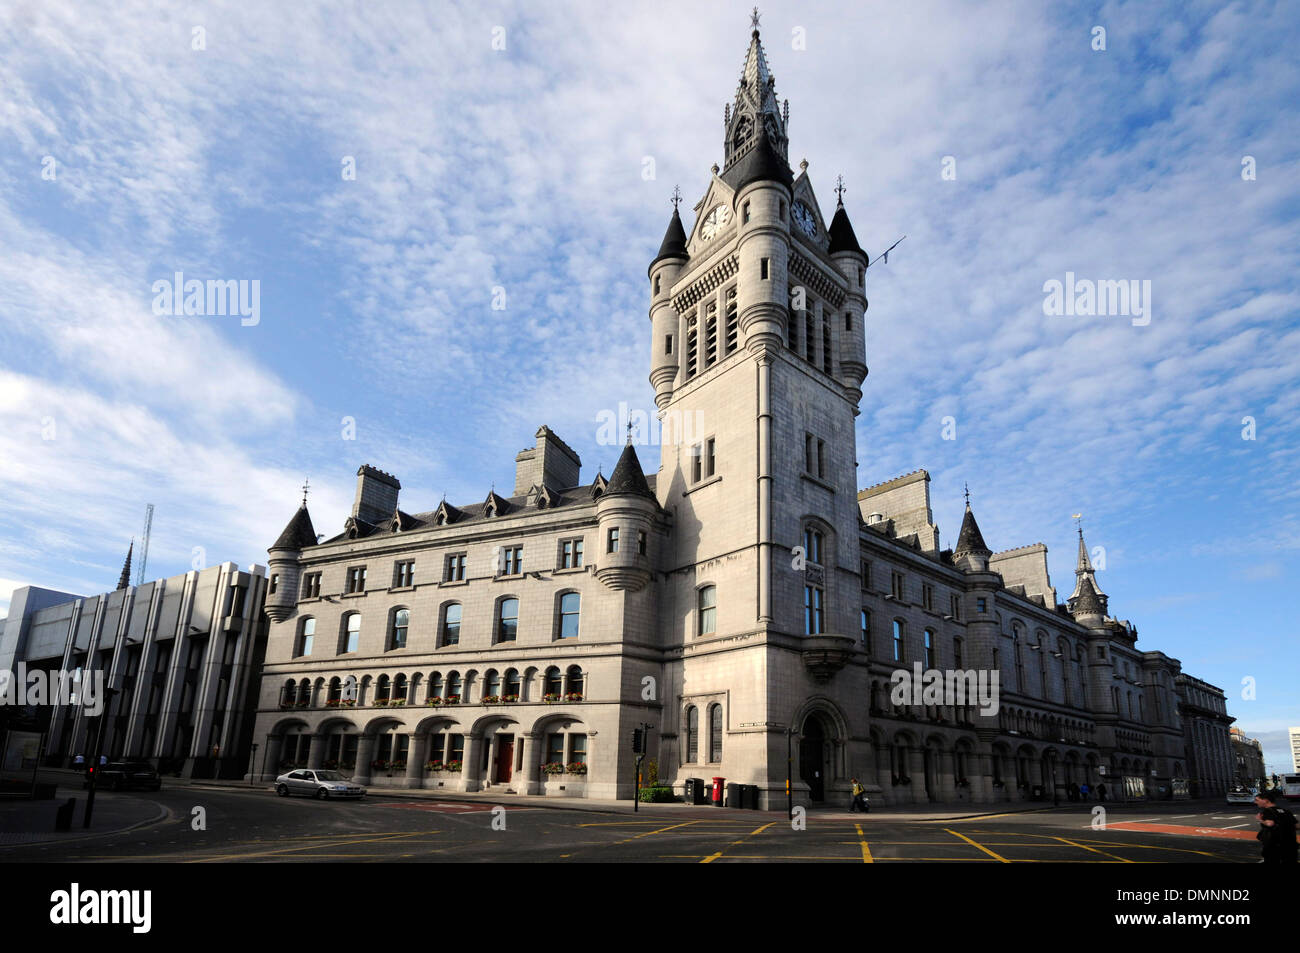 iconic townhouse union street aberdeen - Stock Image